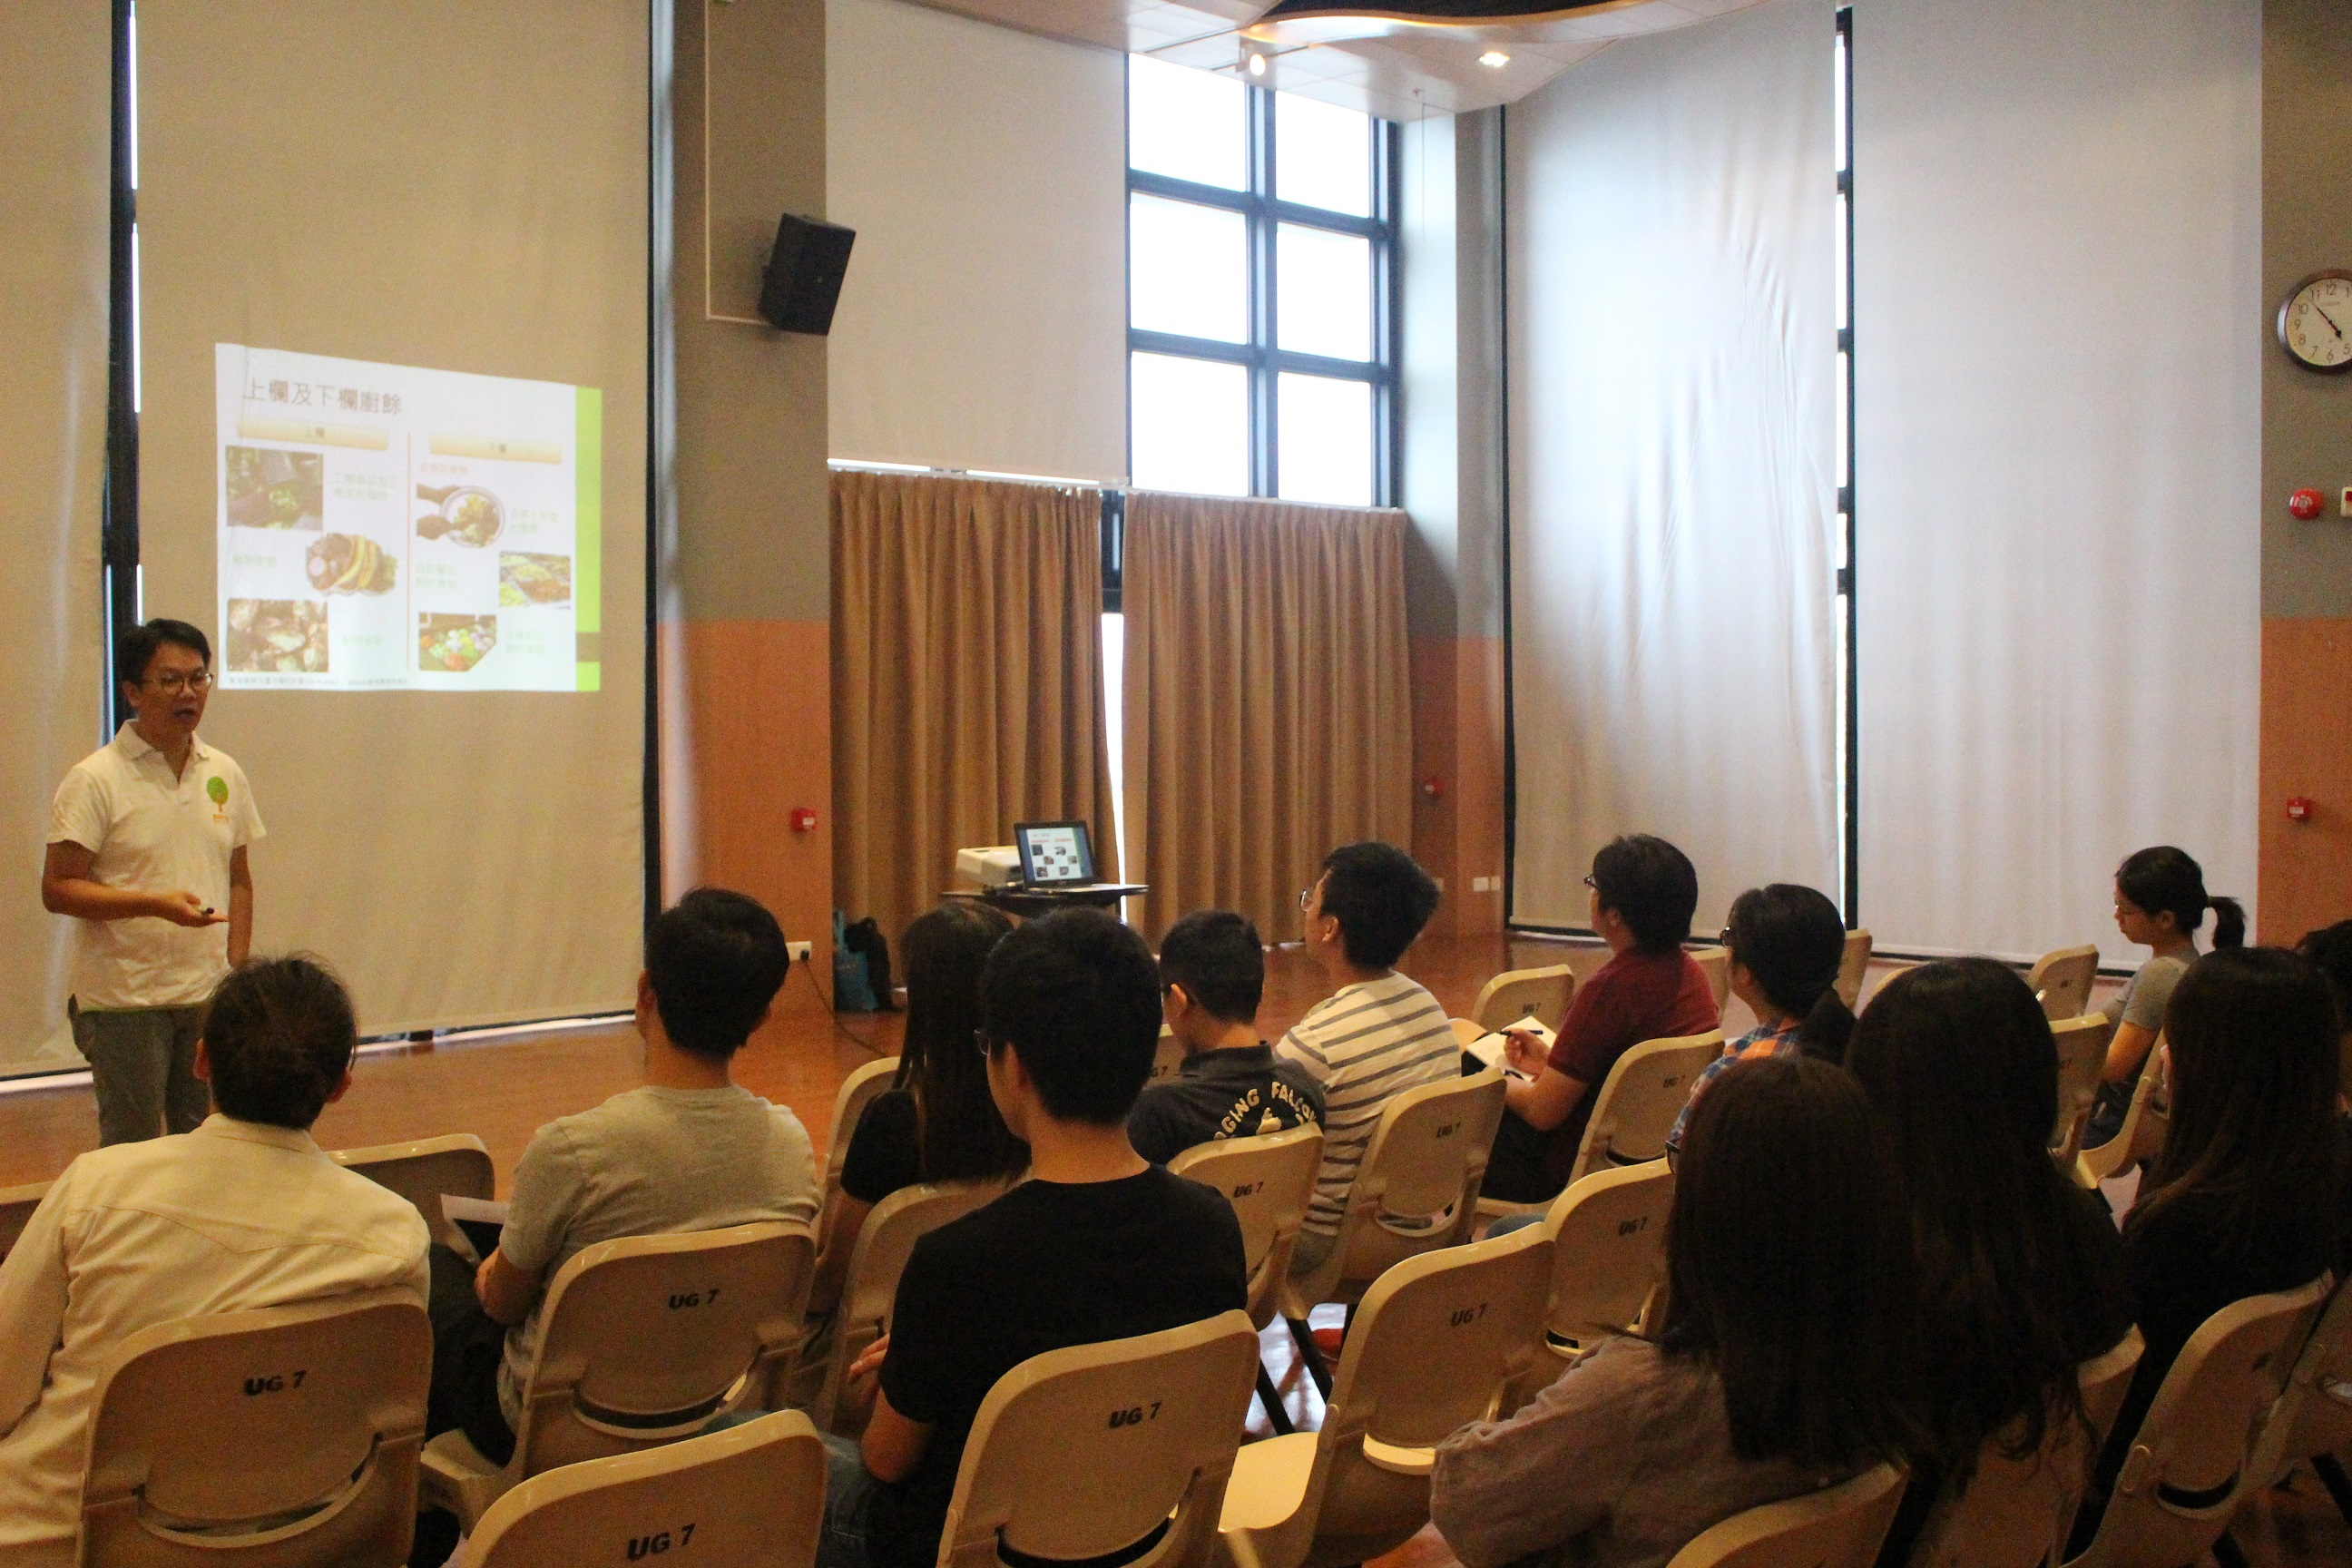 Speaker introduced the concepts of food waste in the talk